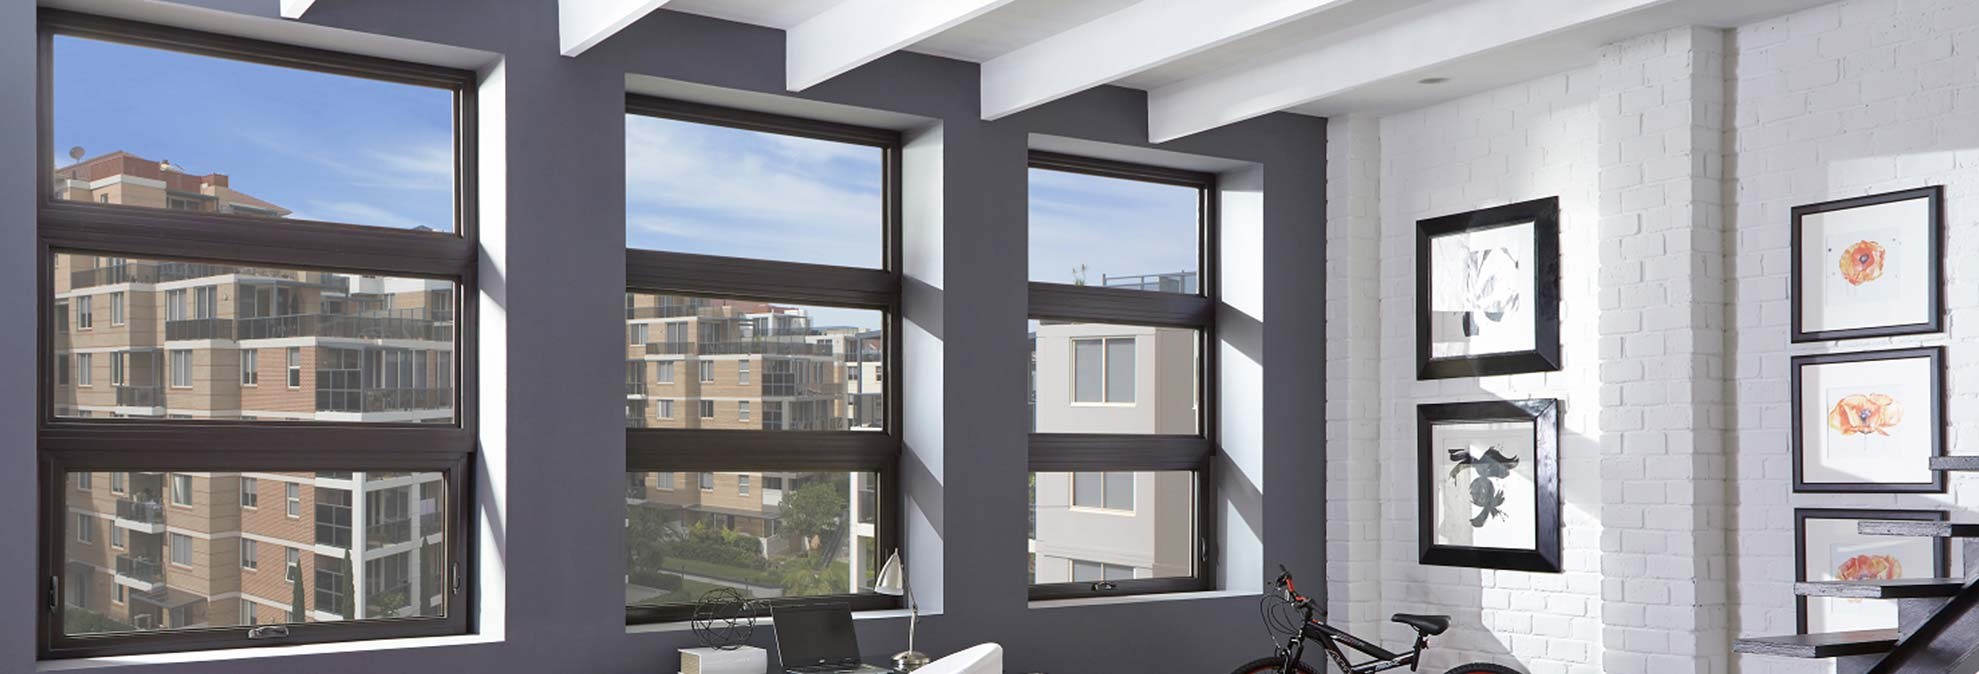 Big Windows That Bring the Outside In - Consumer Reports